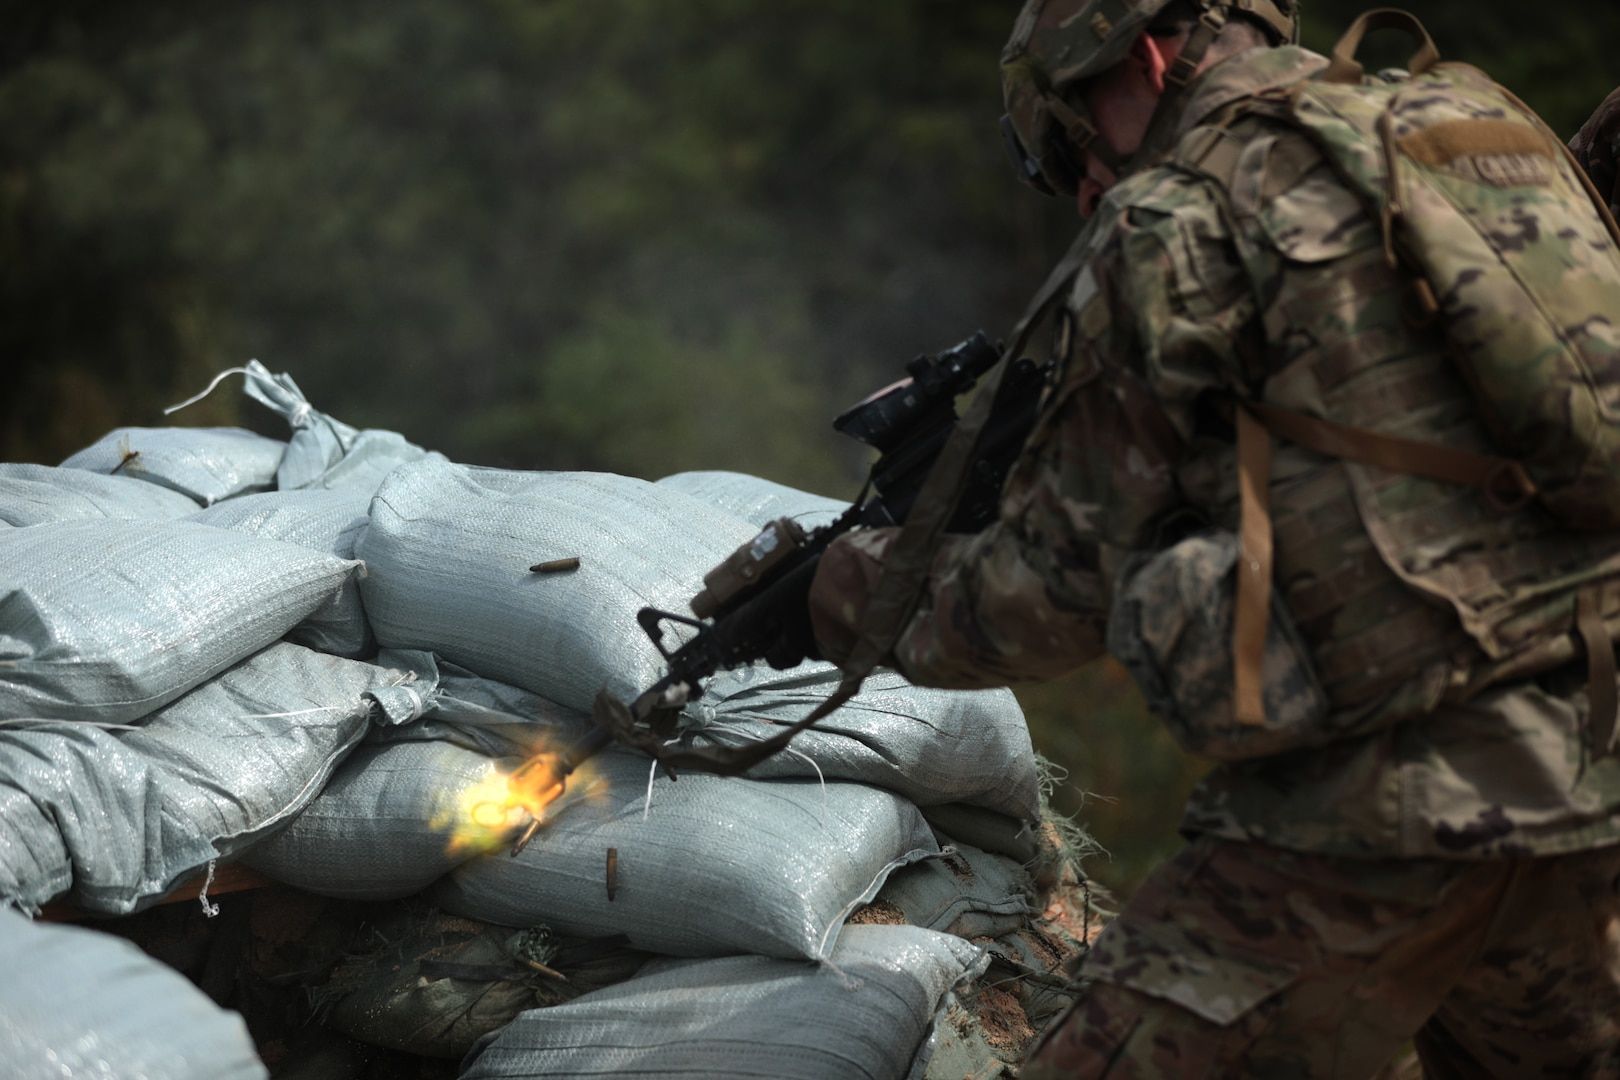 Infantryman with 3rd Battalion, 8th Cavalry Regiment, 3rd Armored Brigade Combat Team, 1st Cavalry Division, clears bunker September 25, 2019, during platoon live-fire training, Rodriguez Live Fire Complex, Republic of Korea (U.S. Army/Scott Kuhn)